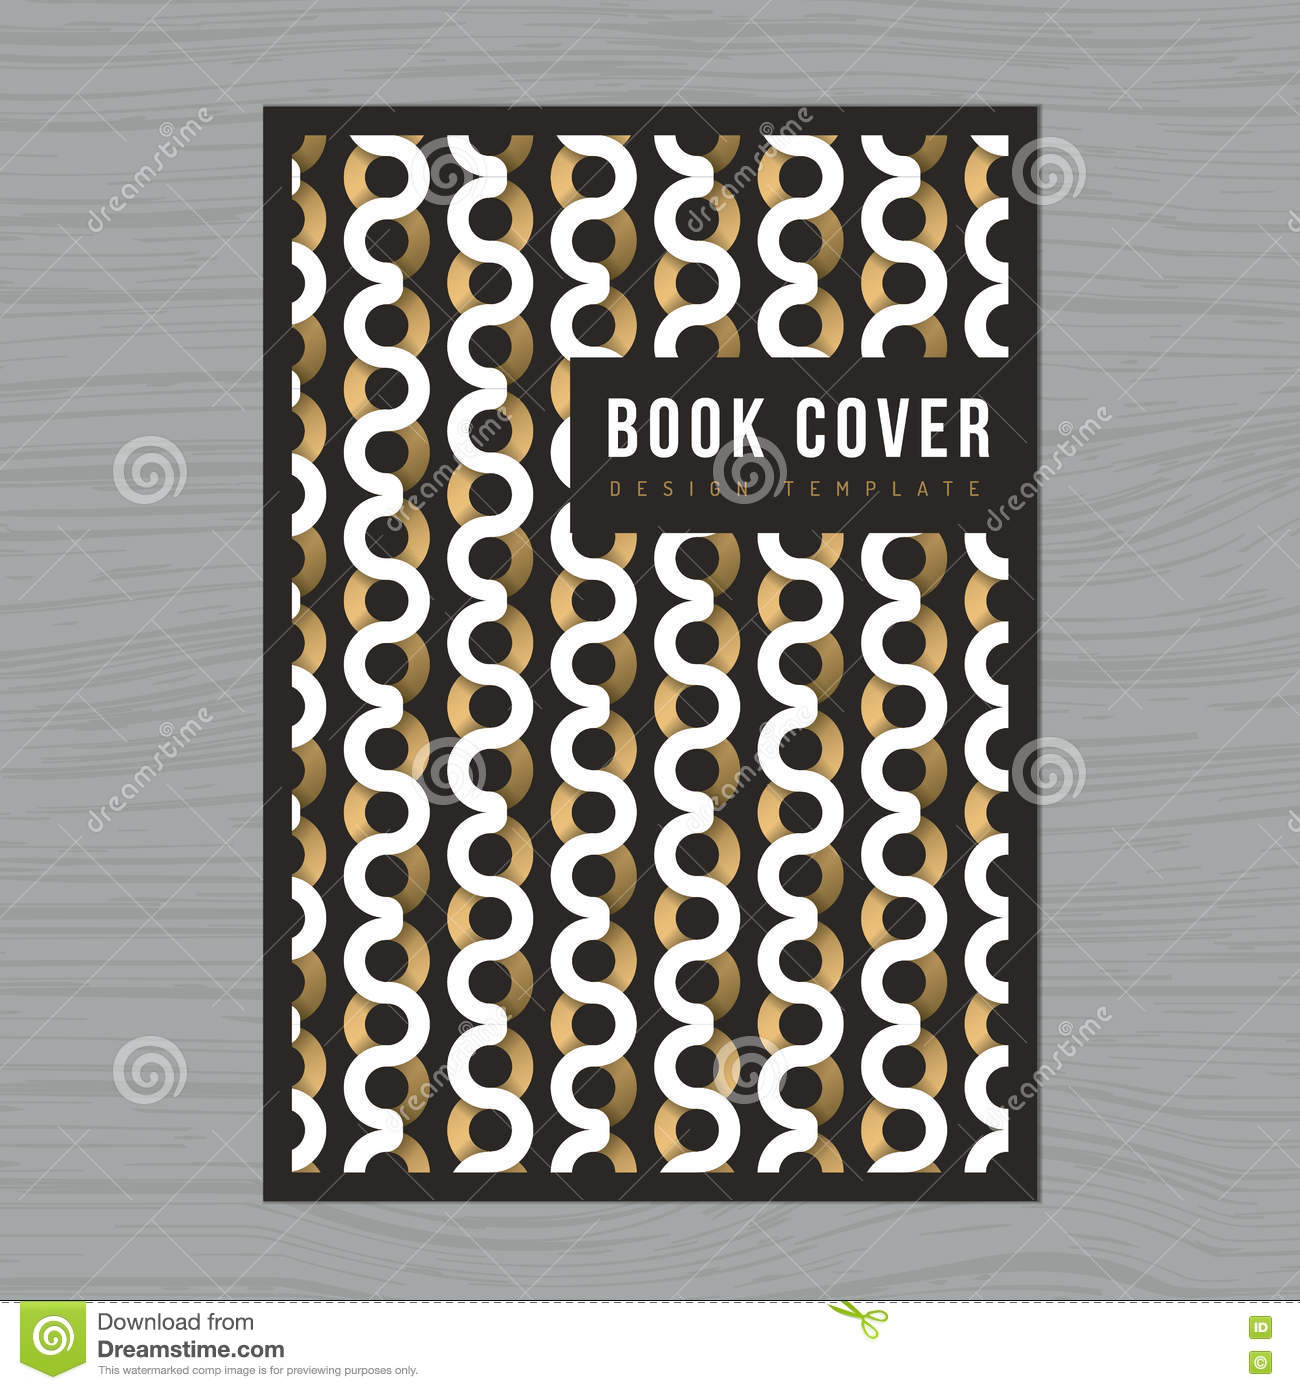 Background Design For Book Cover : Abstract background for book cover poster flyer